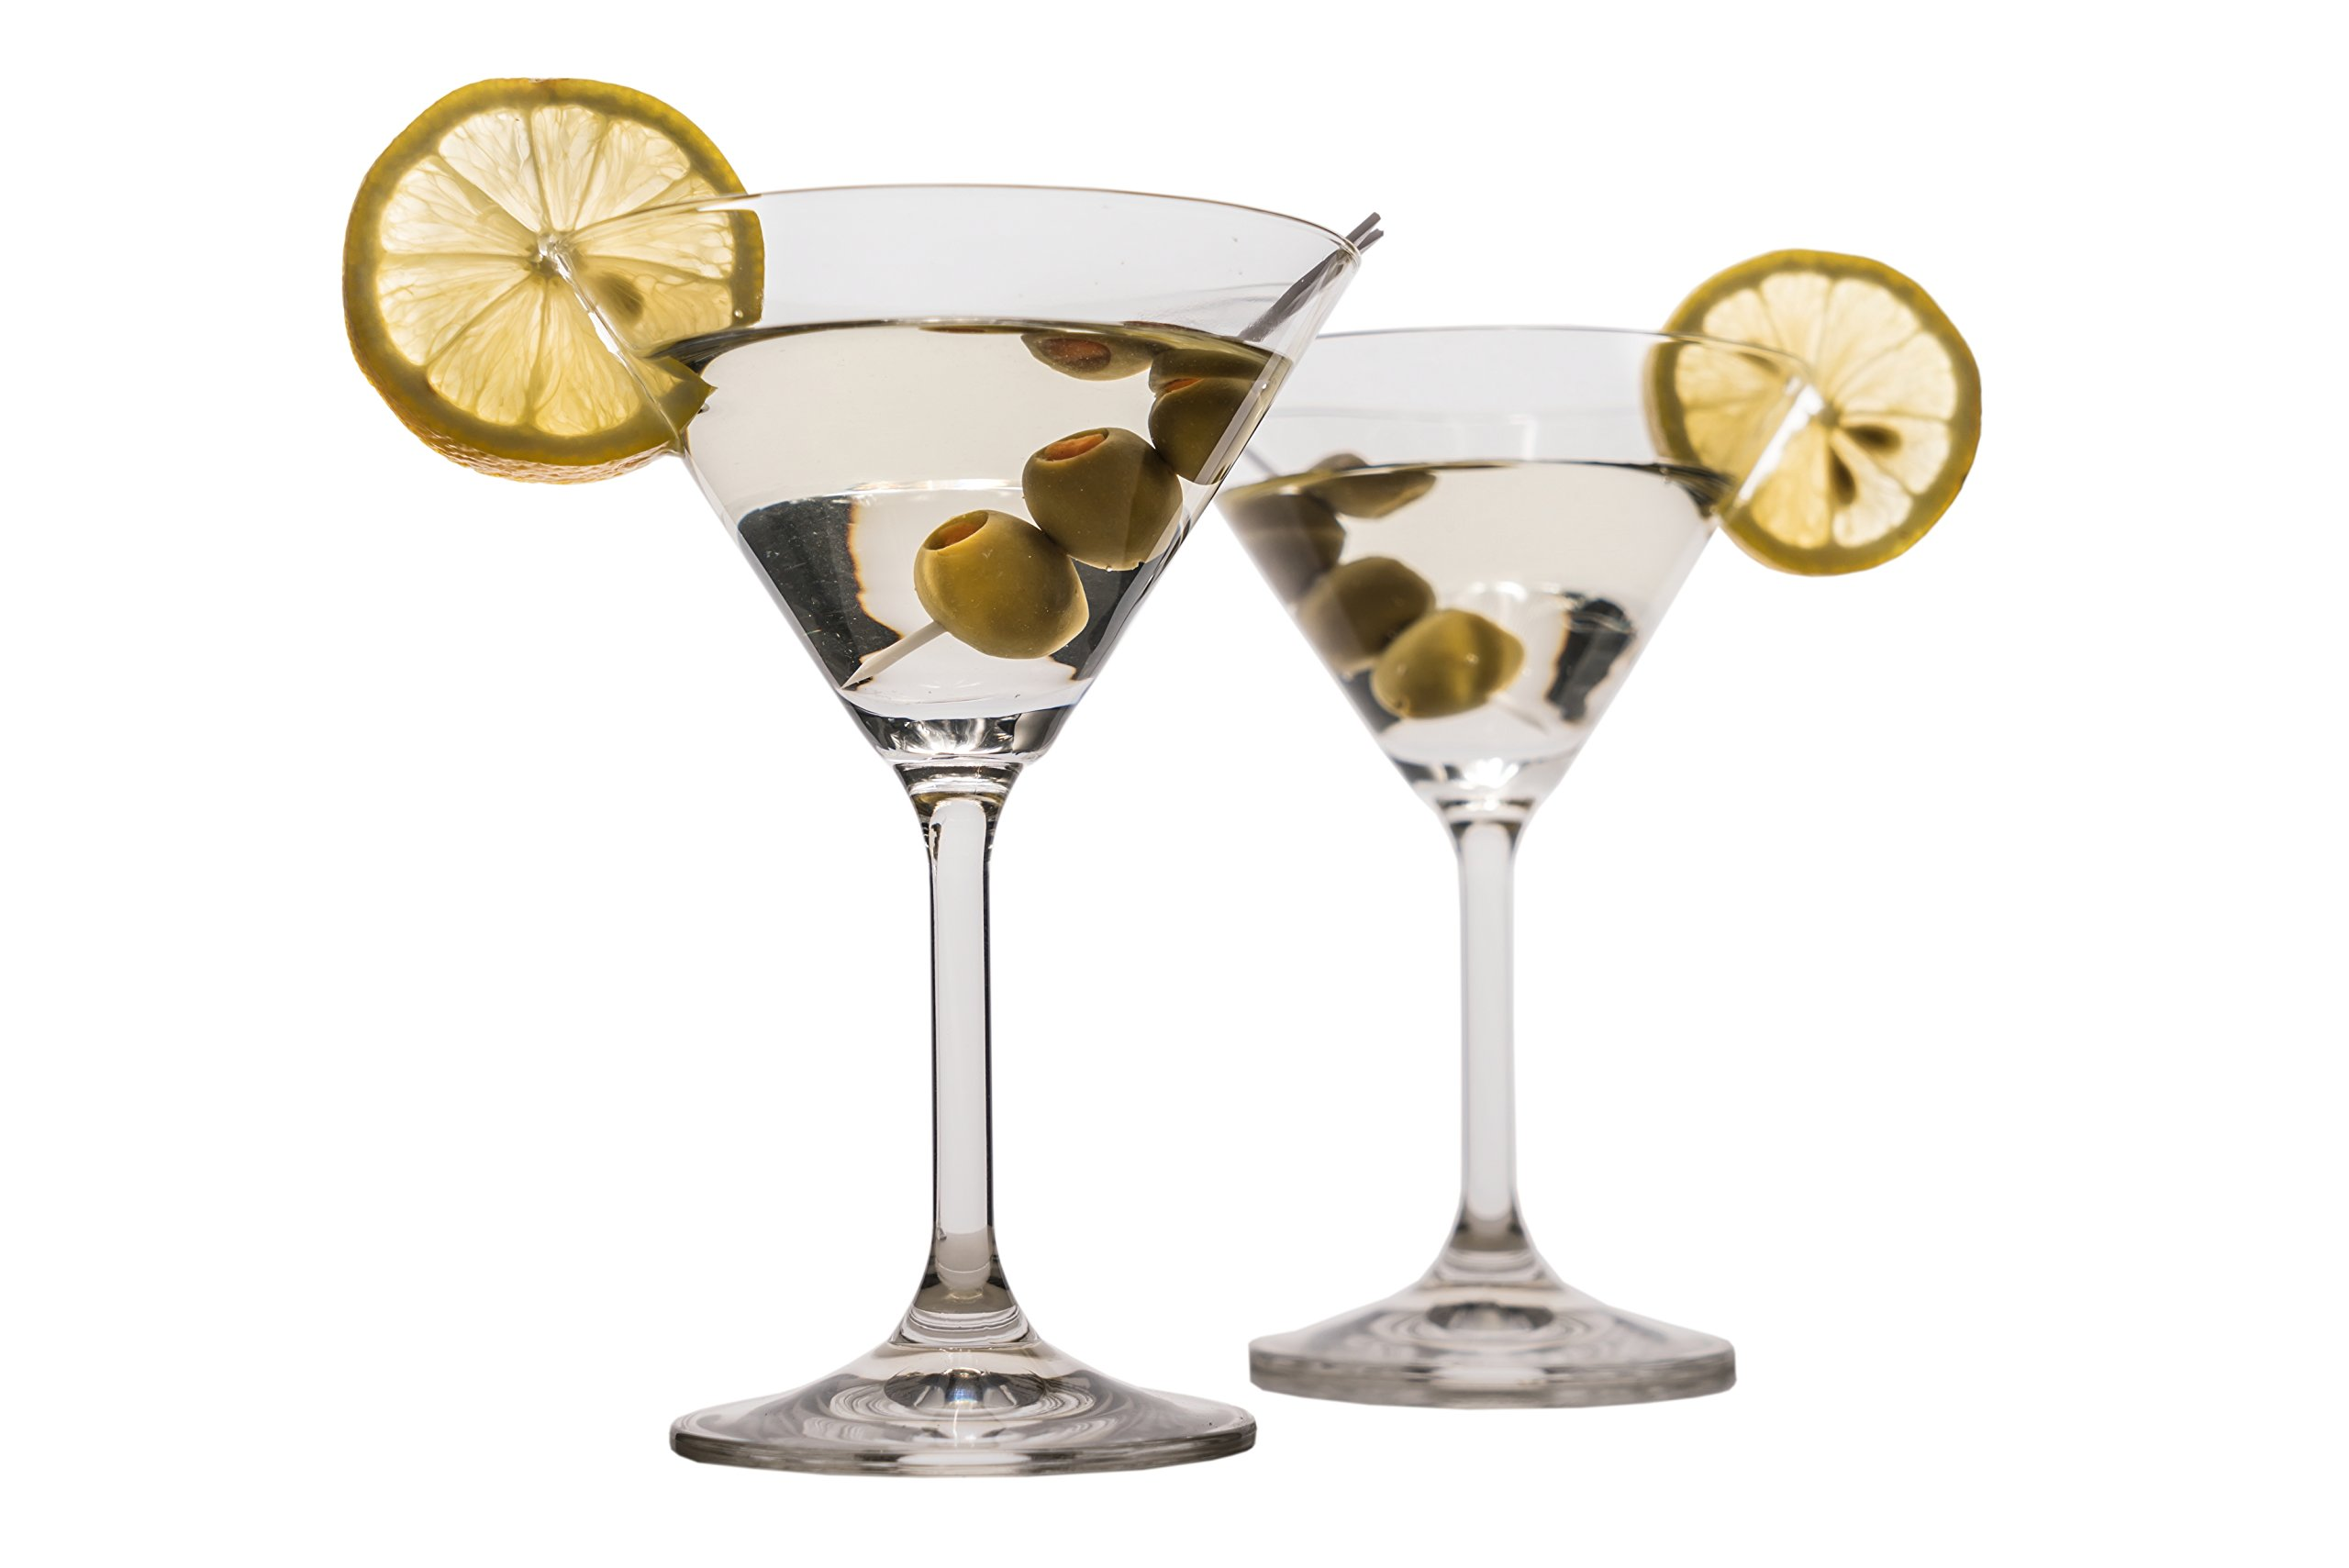 Crystal Martini Glasses Set of 6 - Classic, Elegant & Durable Cocktail Glassware - Bohemian Crystal Glass - 7 Ounces/210 Milliliters